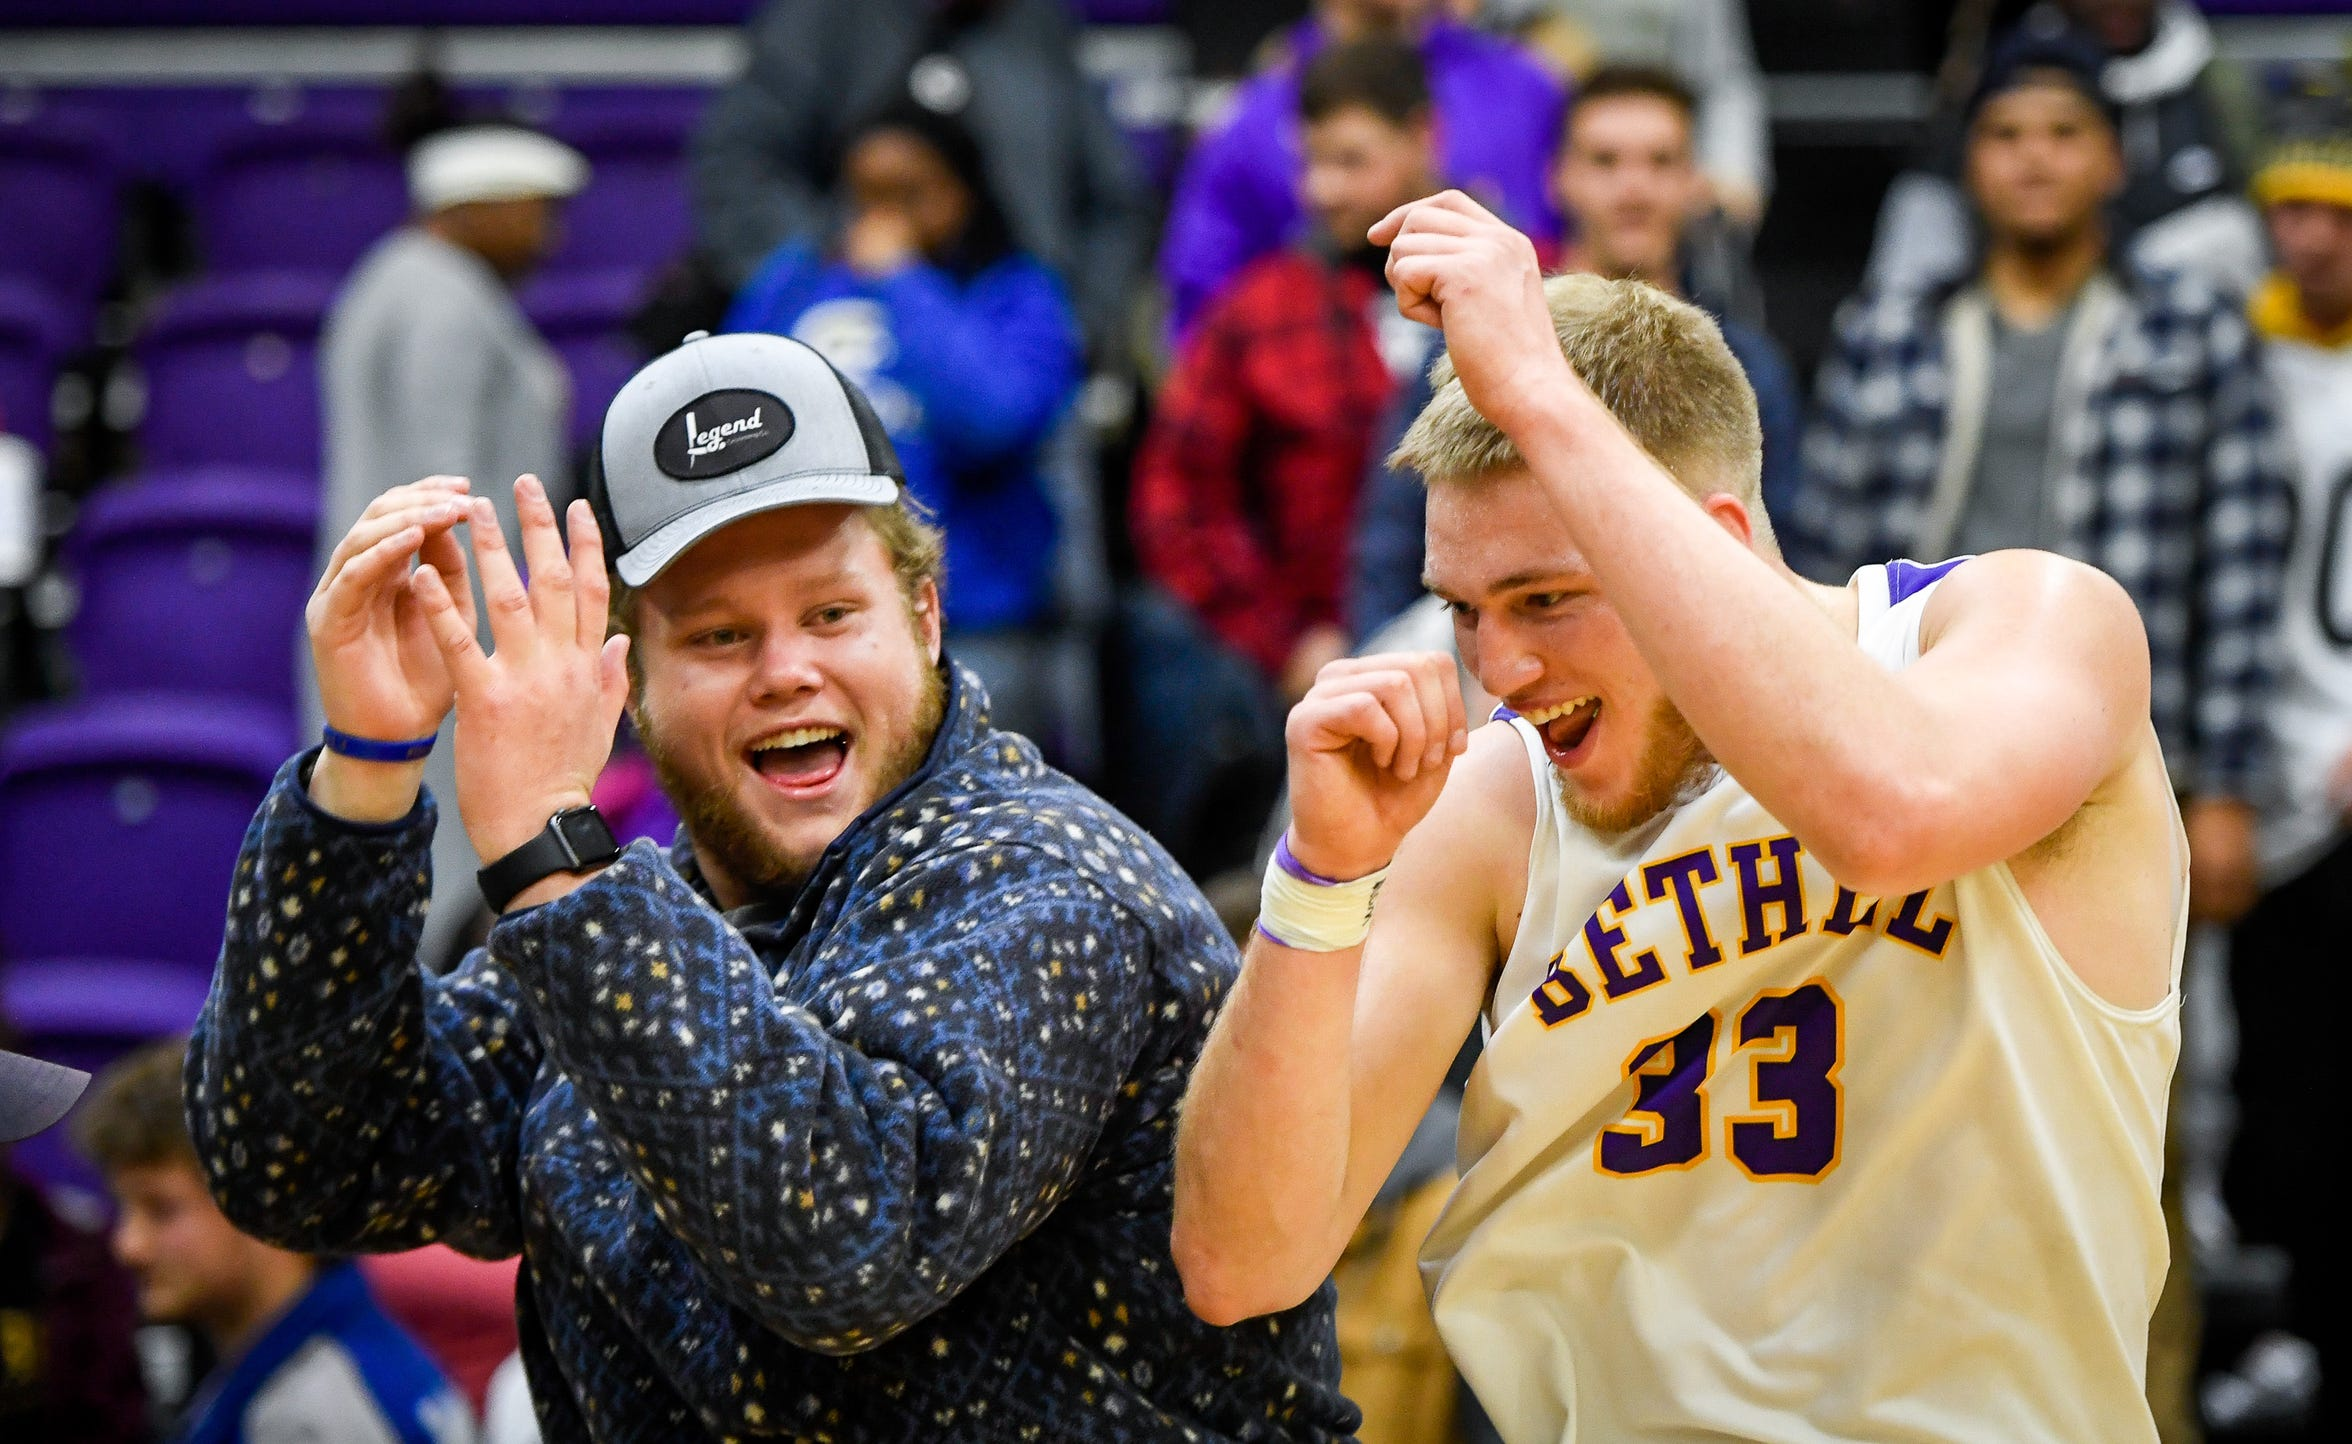 Cayden Edmonson celebrates with Bethel football player Trace Pierce after defeating rival the Freed-Hardeman Lions 84-75 at Bethel's Crisp Arena Thursday evening, November 14, 2019.